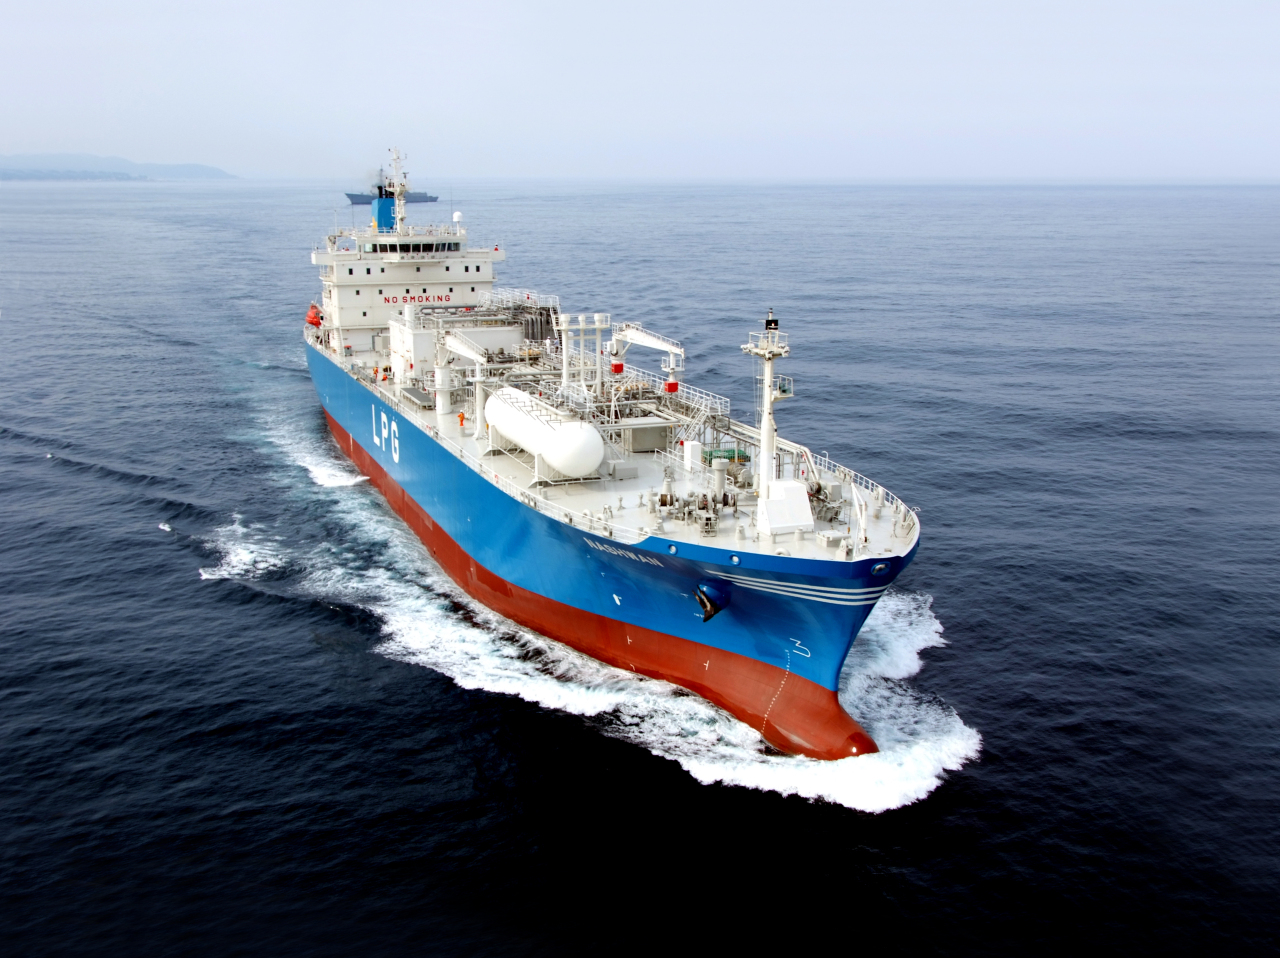 A large-sized liquefied natural gas carrier completed by Hyundai Heavy Industries in 2016. (HHI)